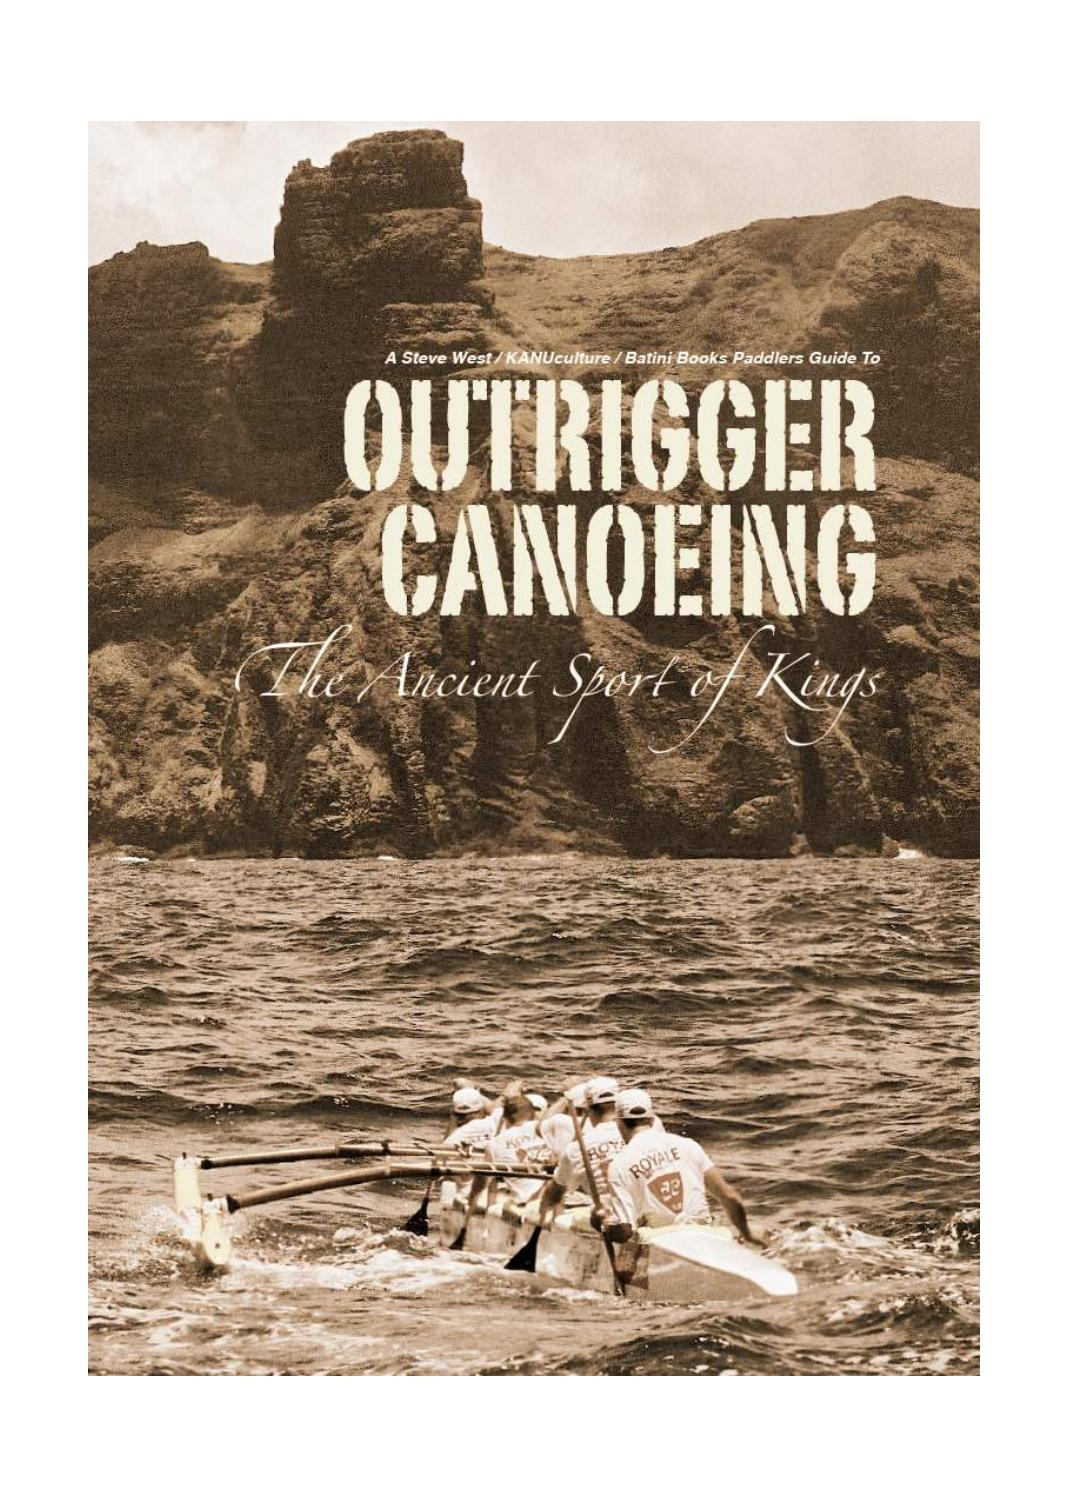 f49a4bb3dc6 Paddlers Guide to Outrigger Canoeing by Kanu Culture   Batini Books - issuu